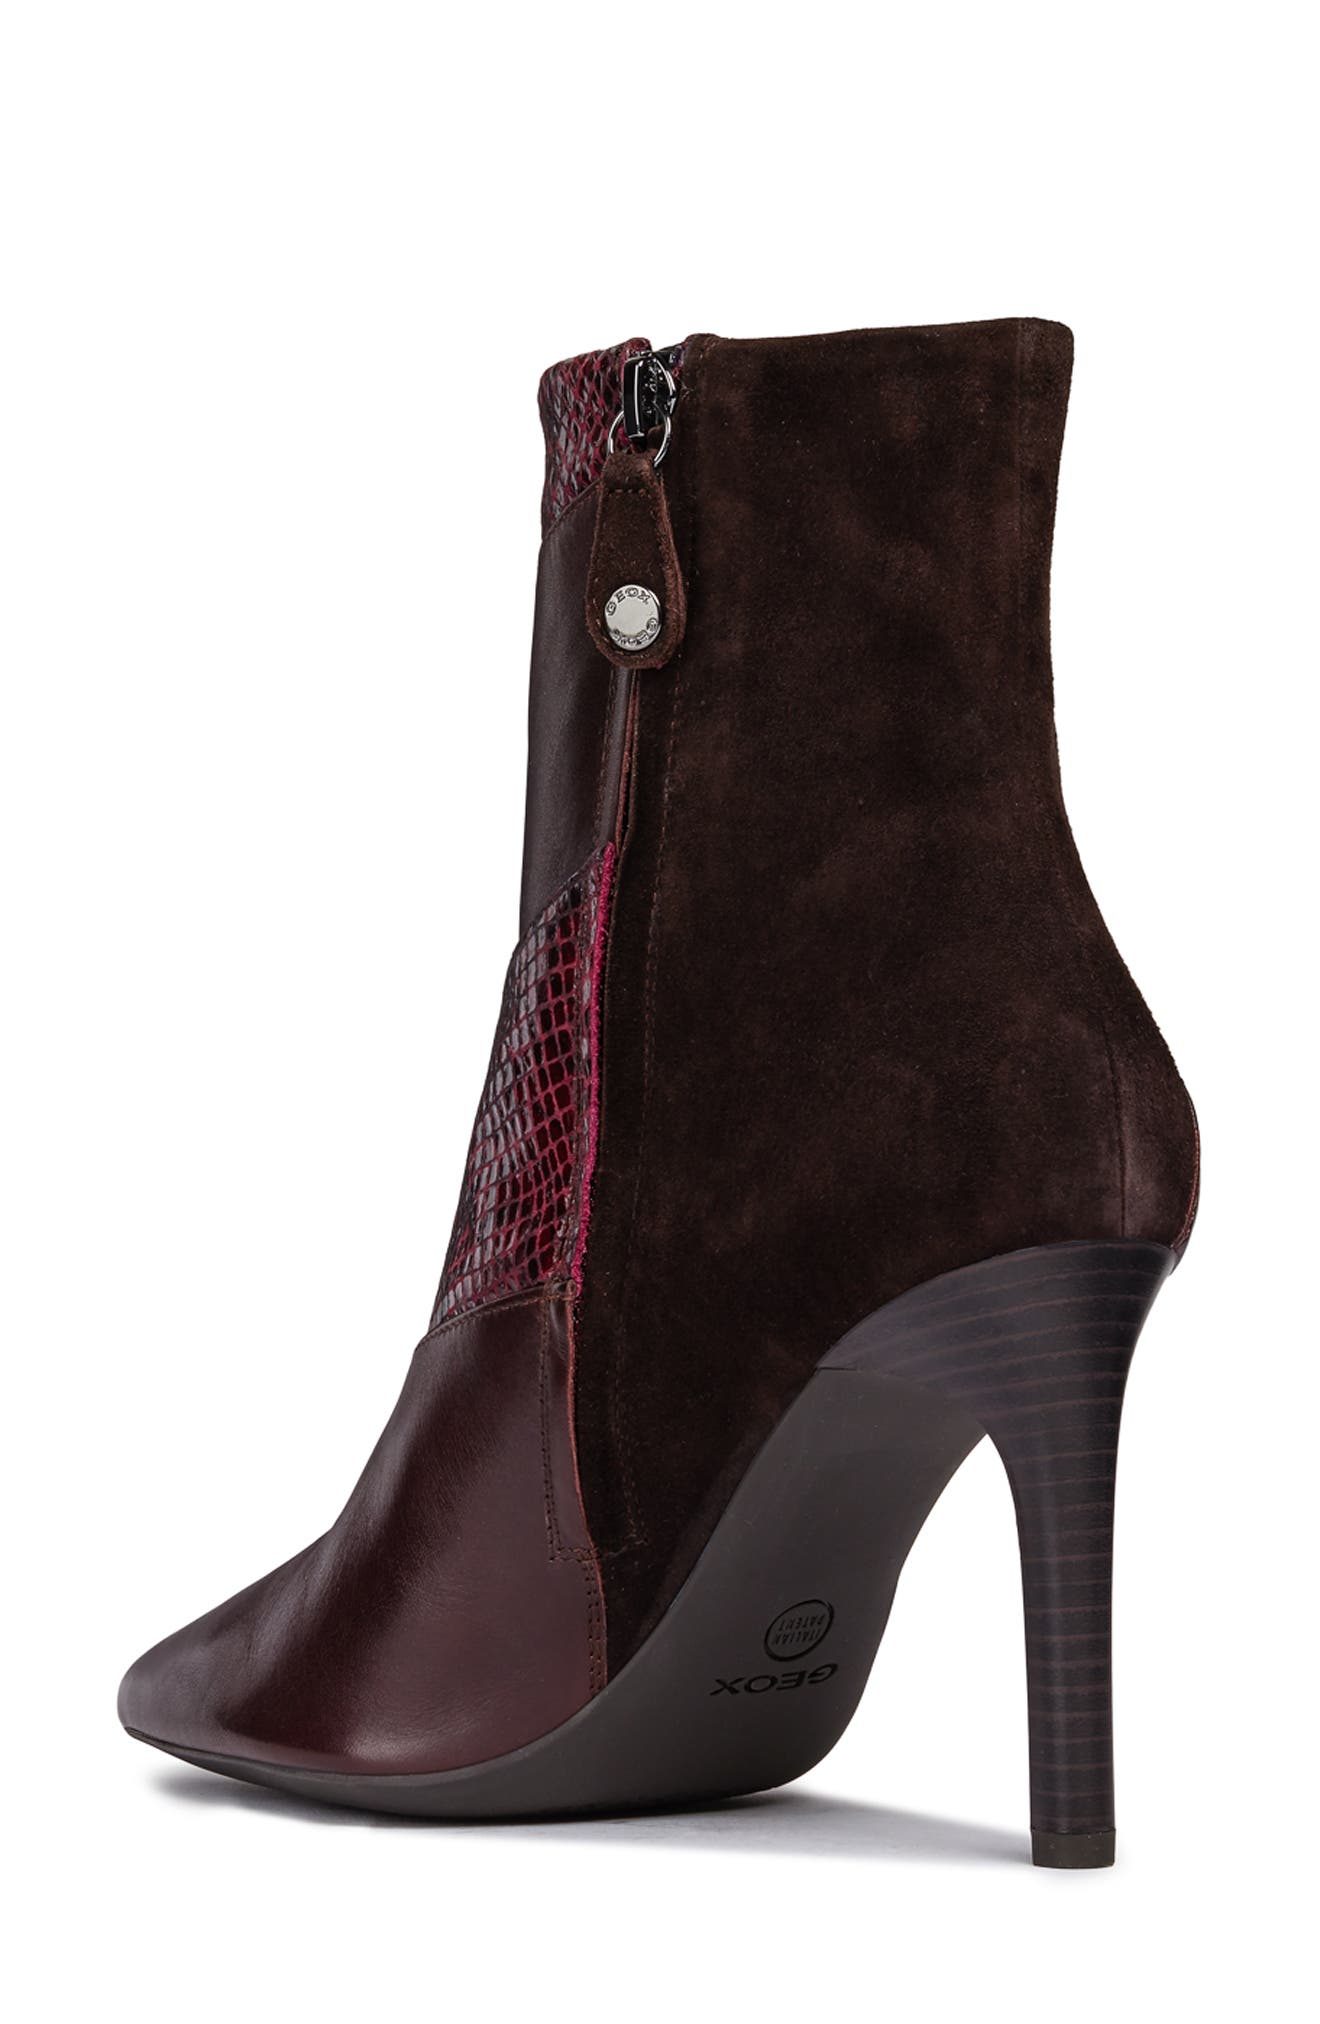 Faviola Bootie,                             Alternate thumbnail 2, color,                             DARK BURGUNDY LEATHER